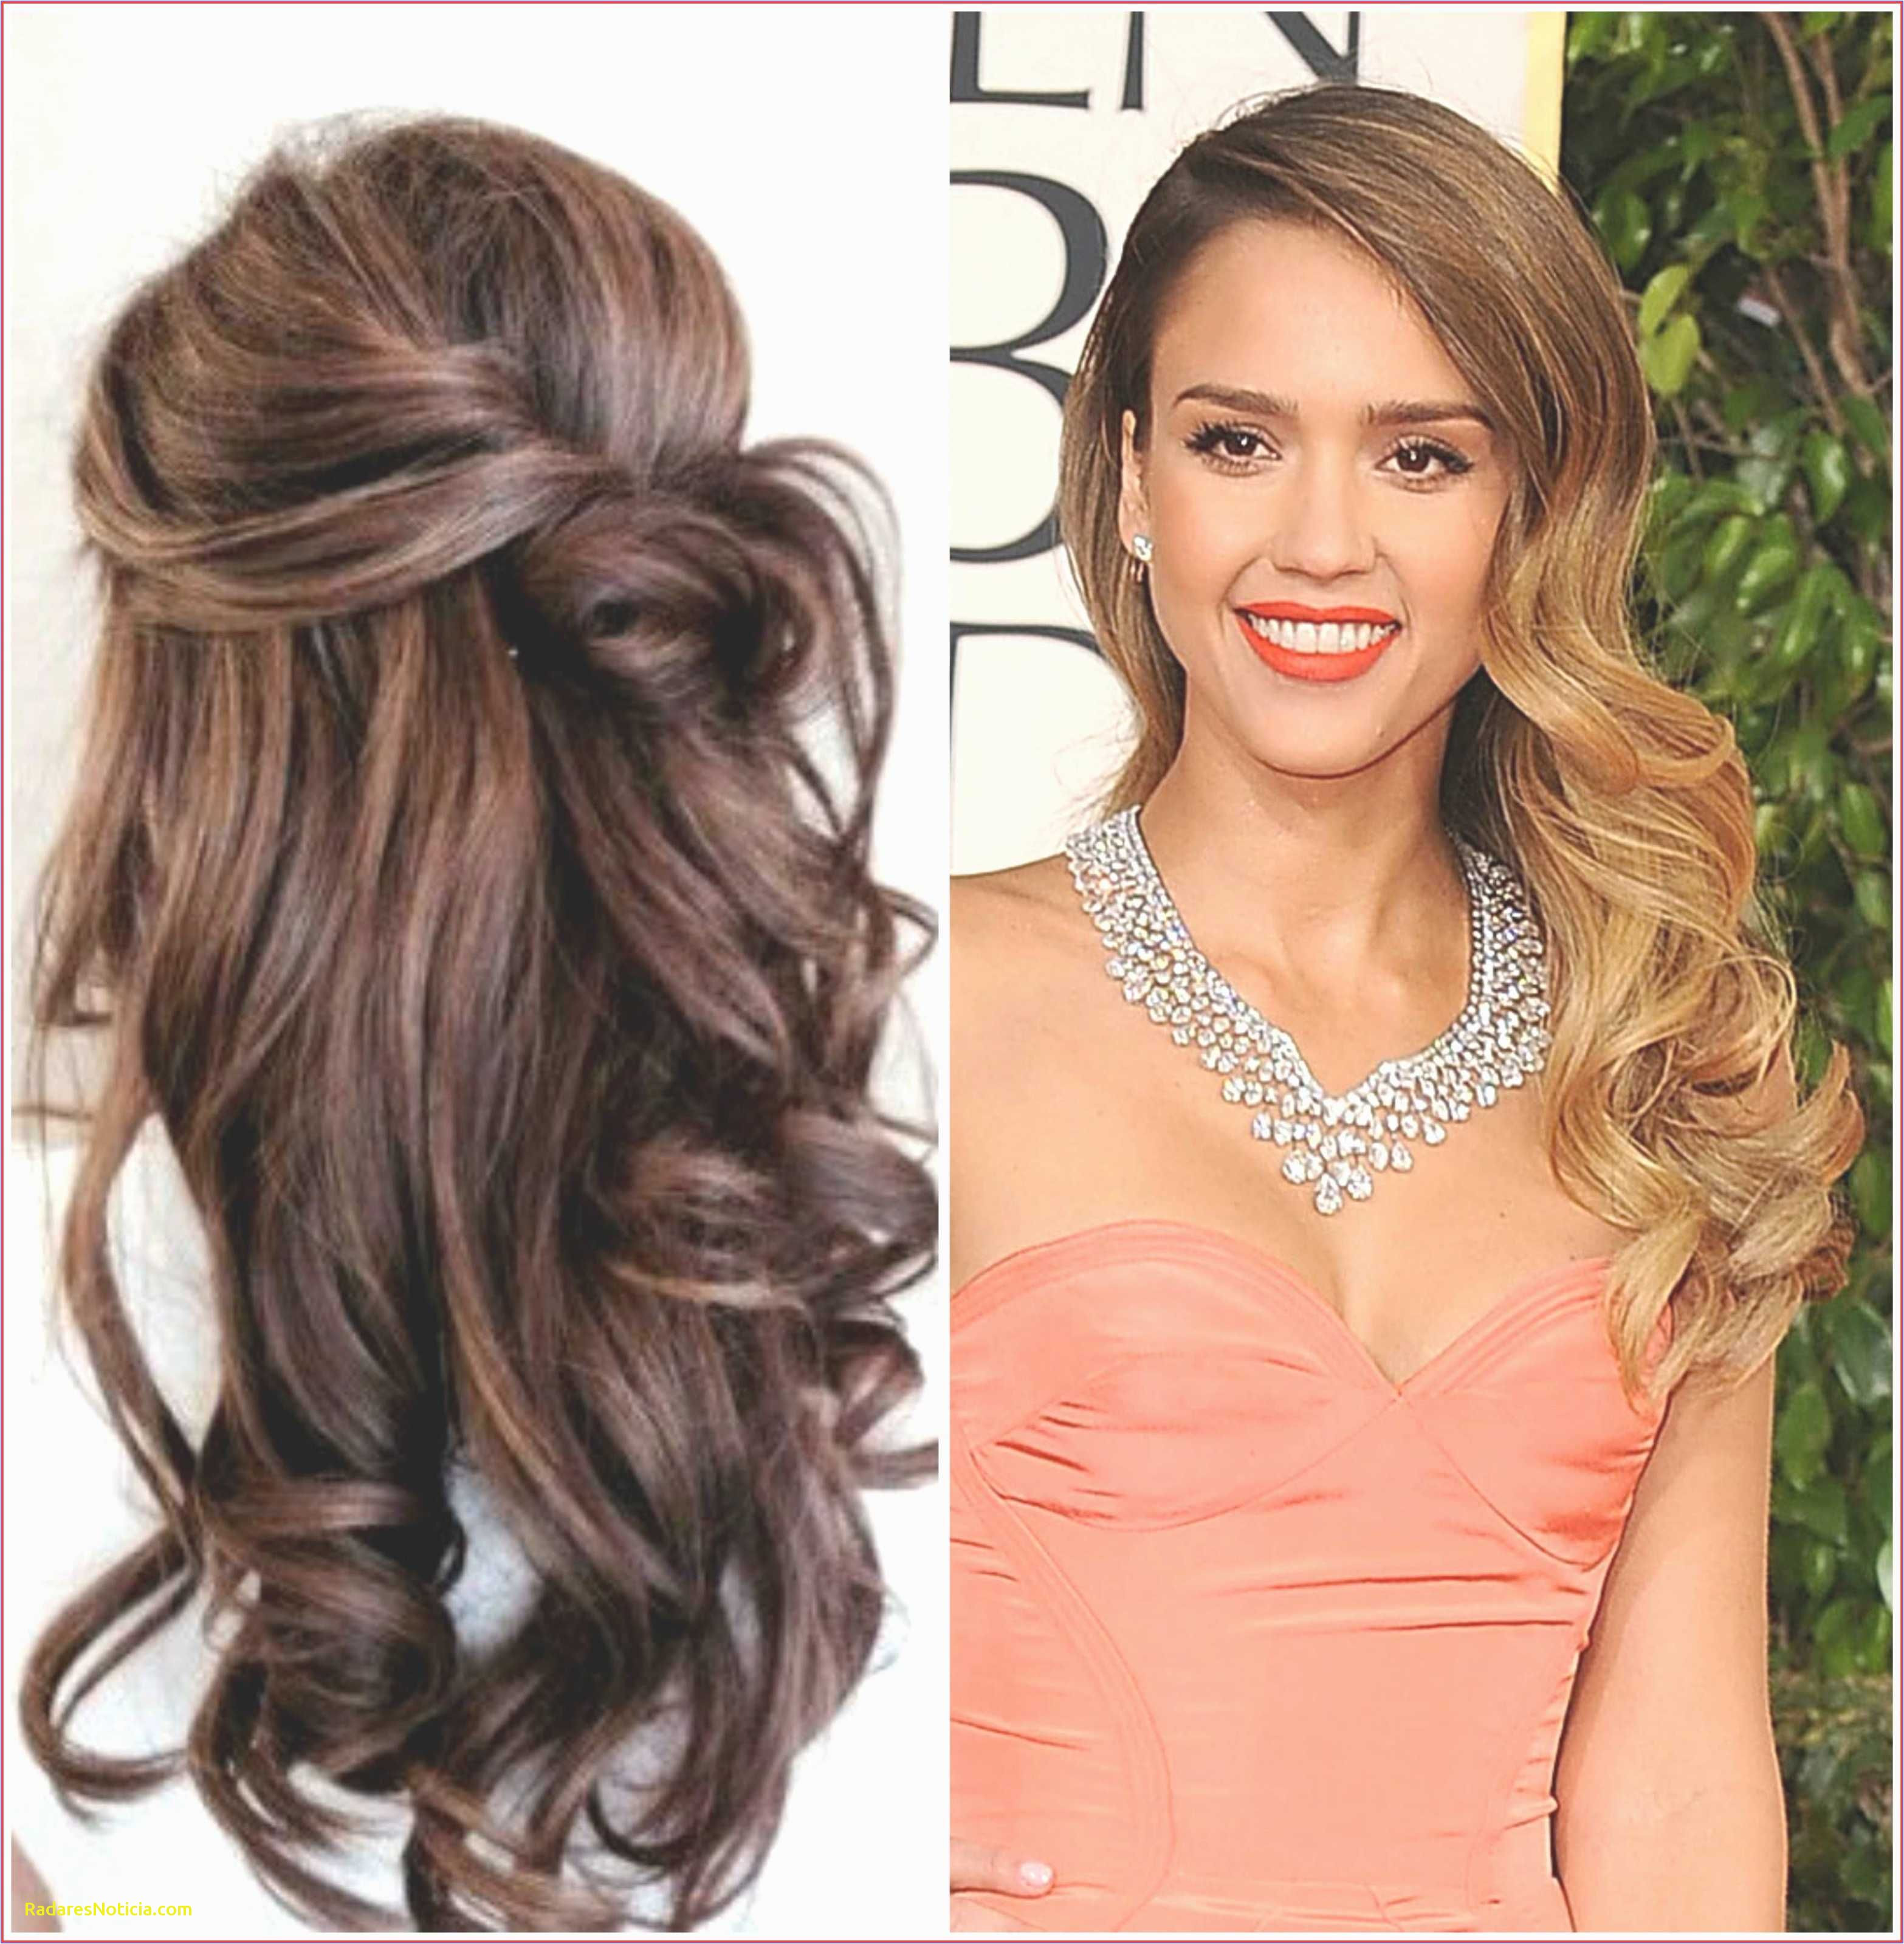 Medium Hairstyles for Girls Elegant Hairstyles for Long Hair 2015 Luxury I Pinimg 1200x 0d 60 Curly Hairstyle Down accessibilitefo from curled braided